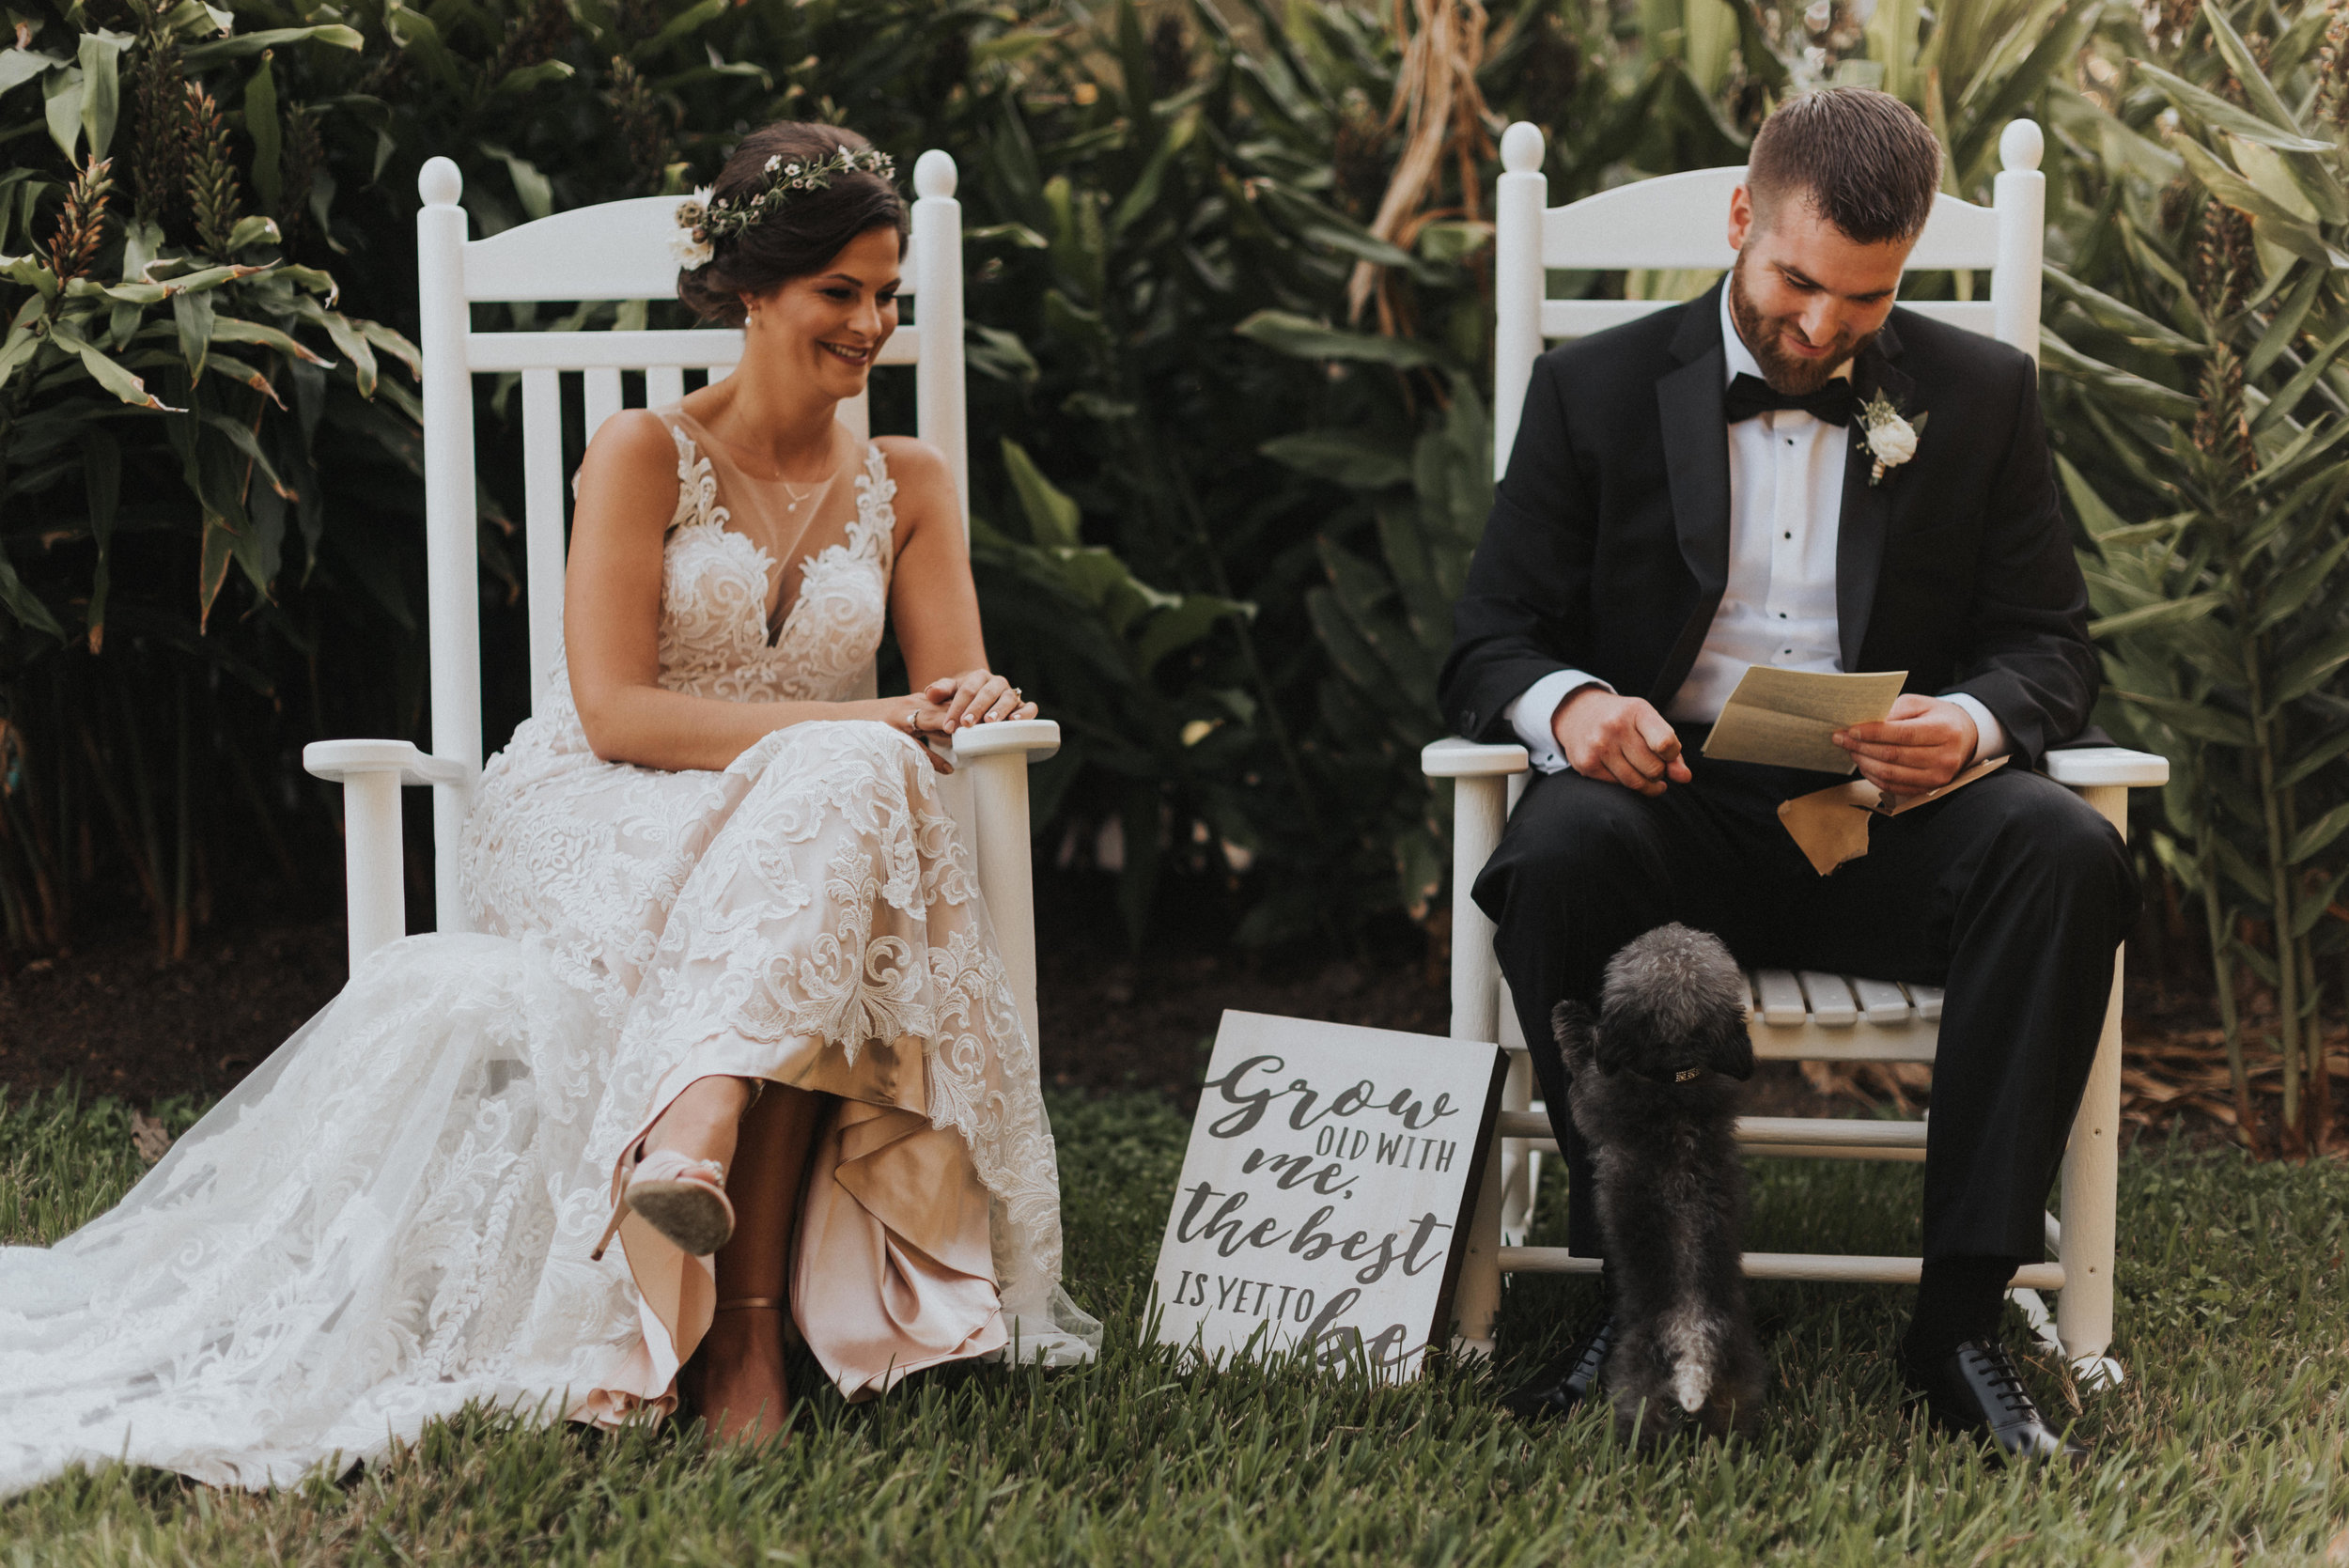 Southern Fete, Southern Wedding, Bride and Groom, Notes